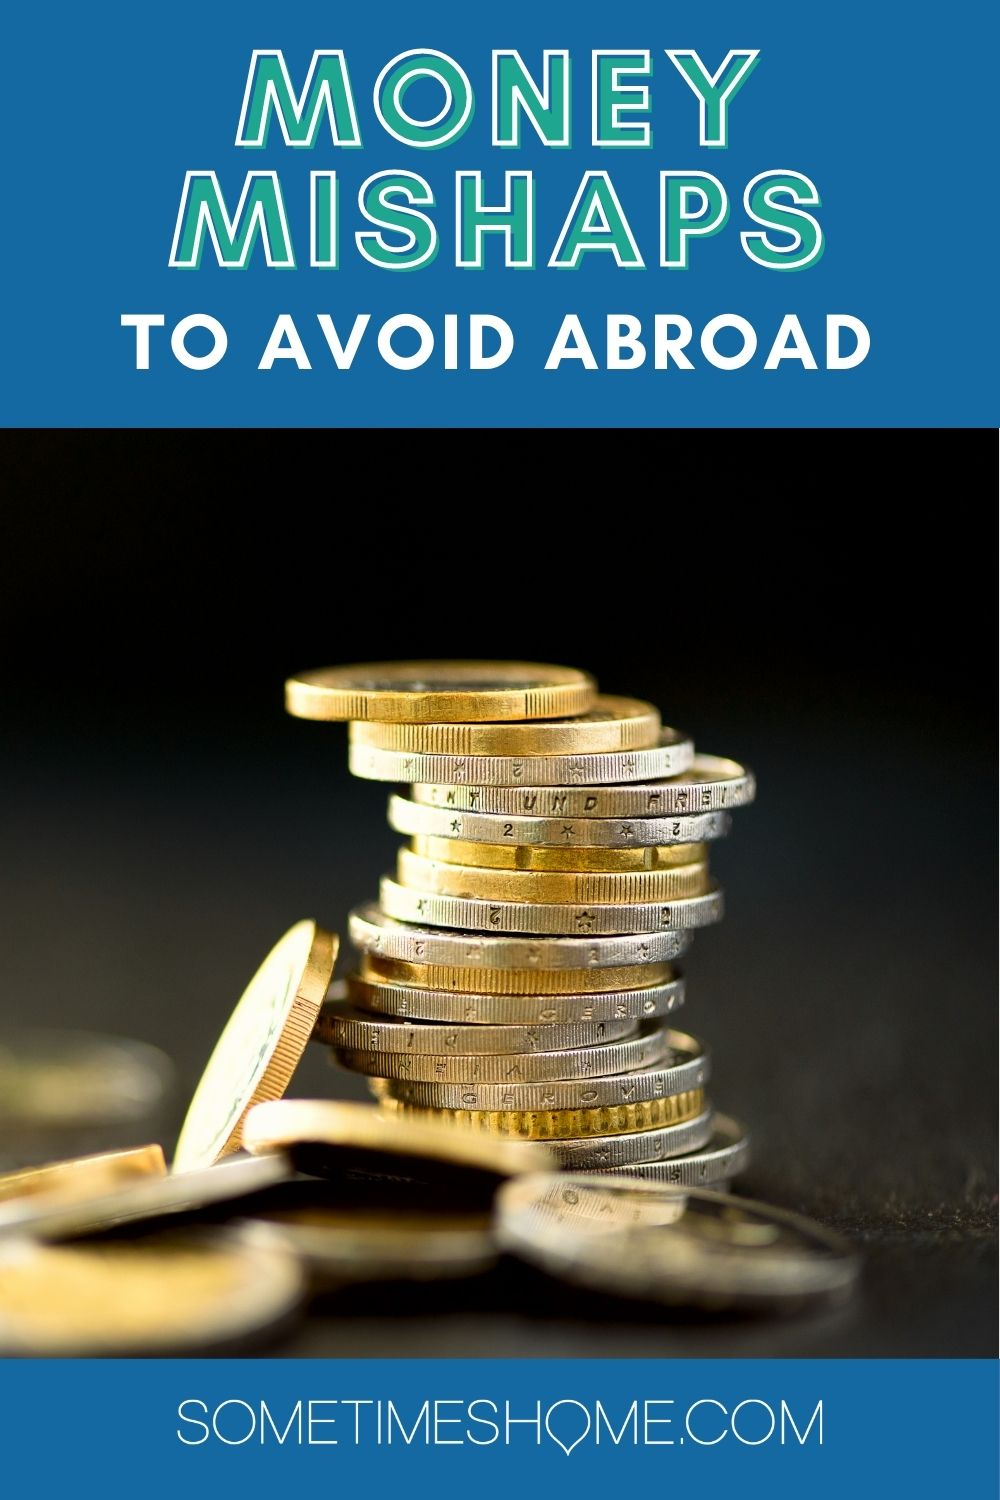 Money mishaps abroad and how to avoid them a foreign money image.